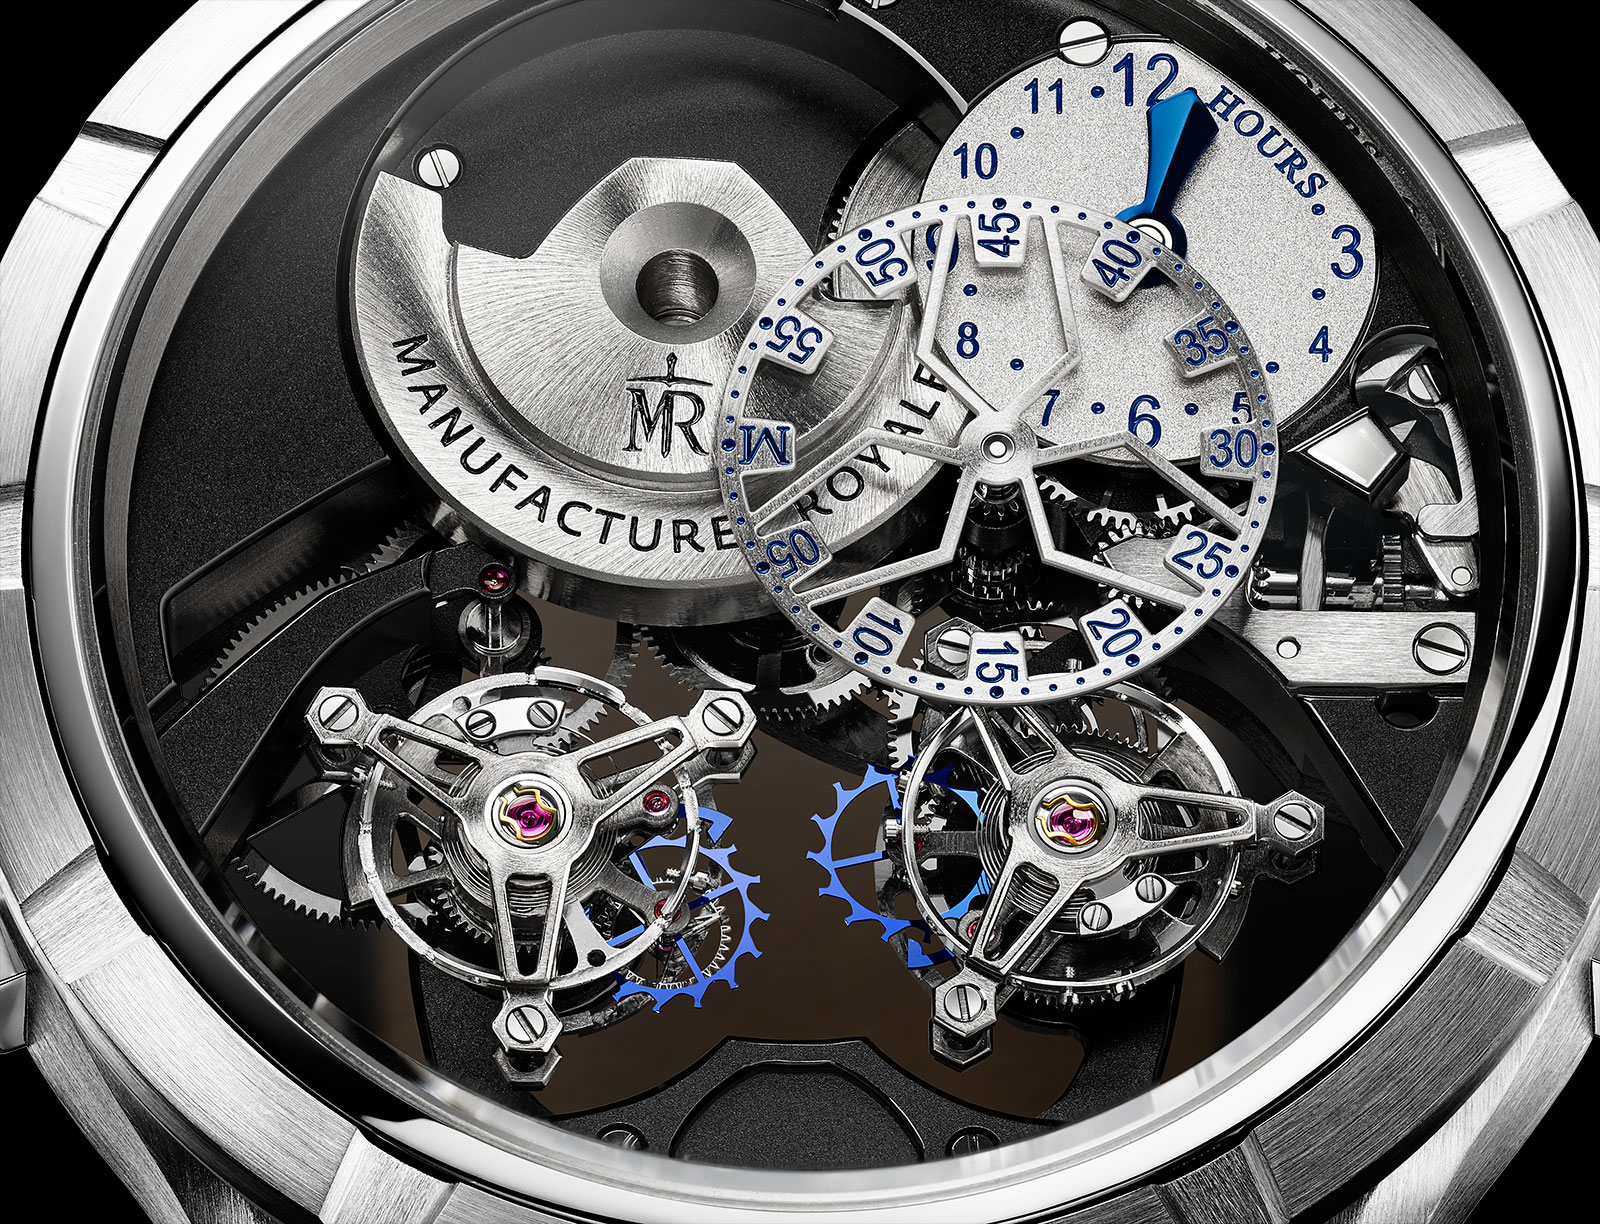 Manufacture Royale 1770 Micromegas Revolution 3